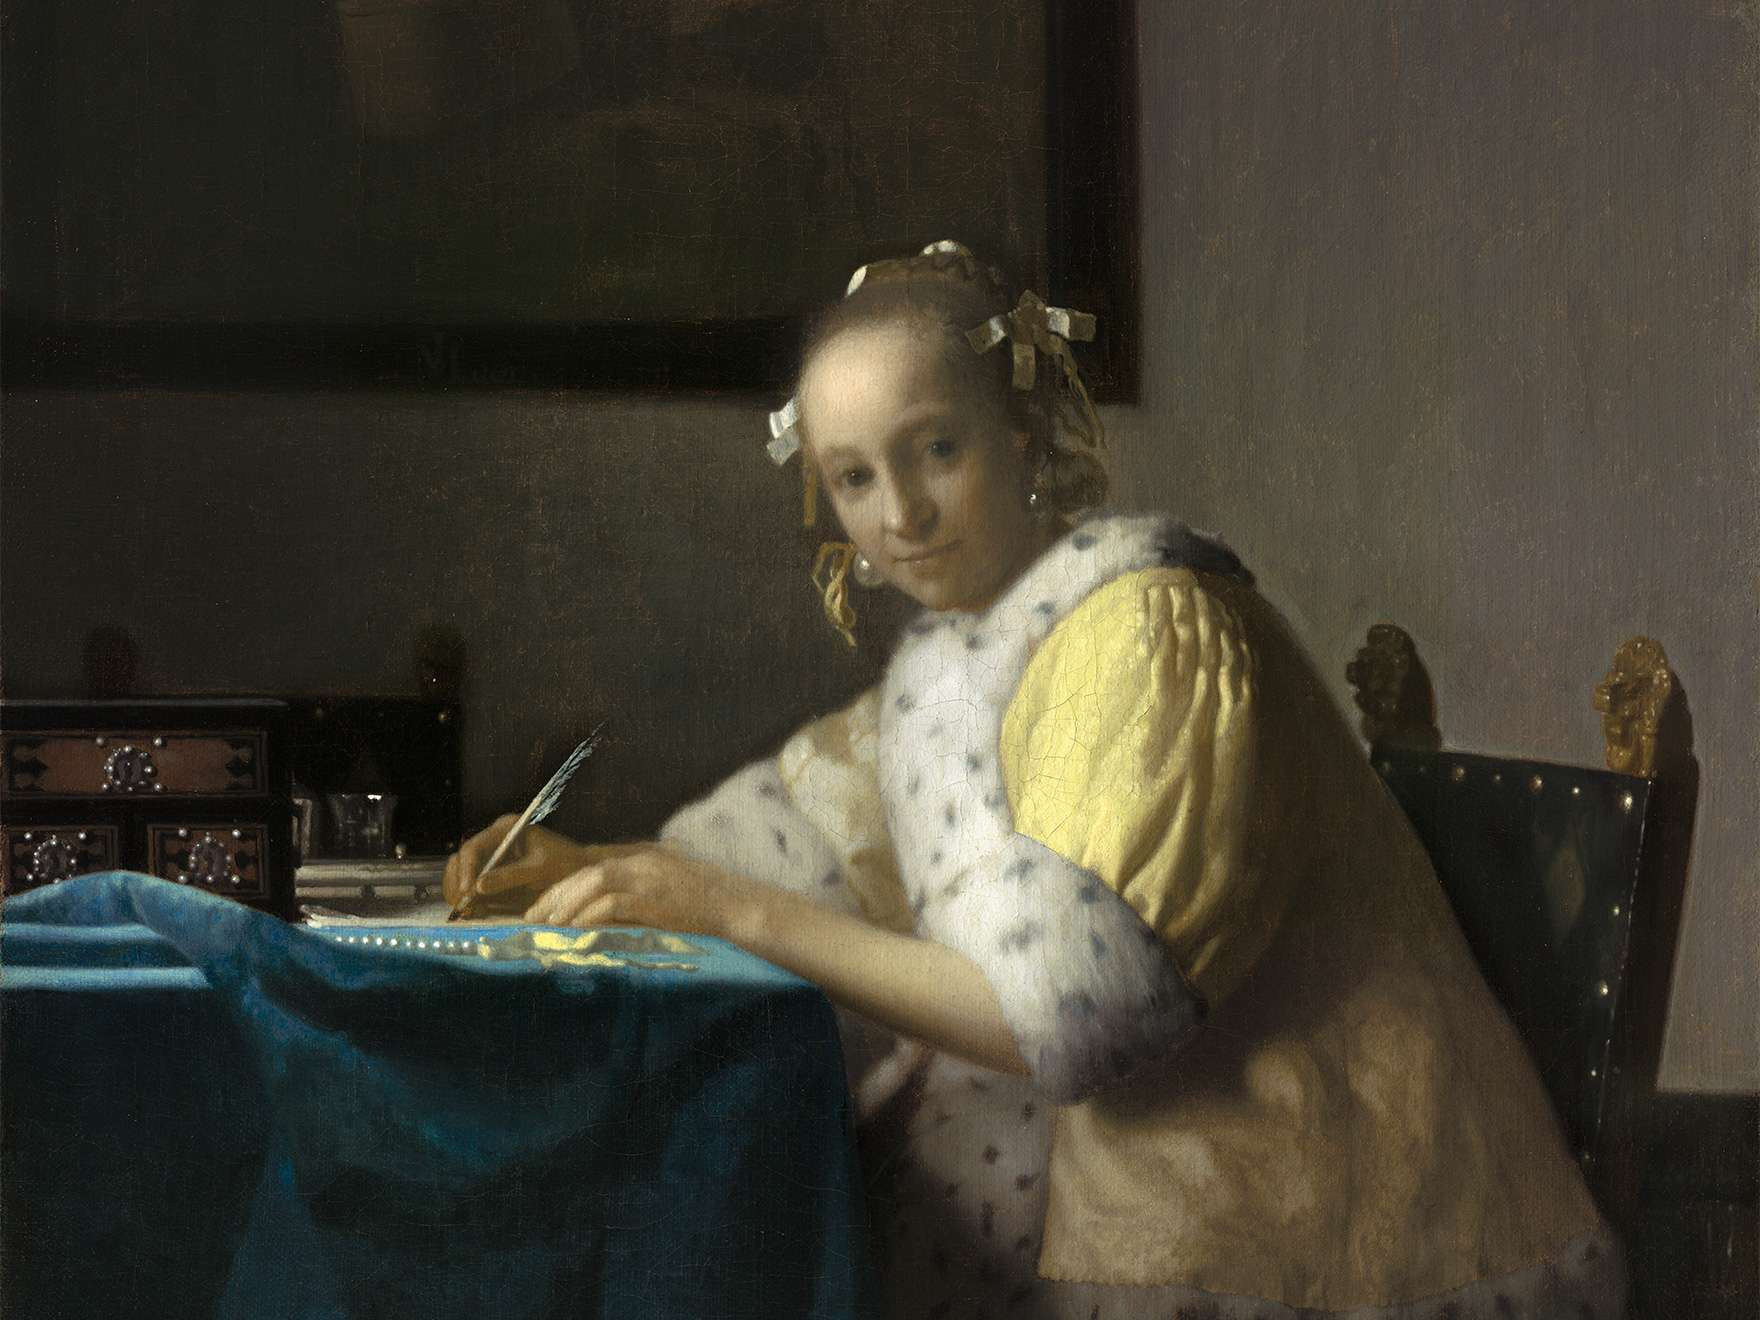 Johannes Vermeer, A Lady Writing, about 1665, On loan from the National Gallery of Art, Washington, DC.